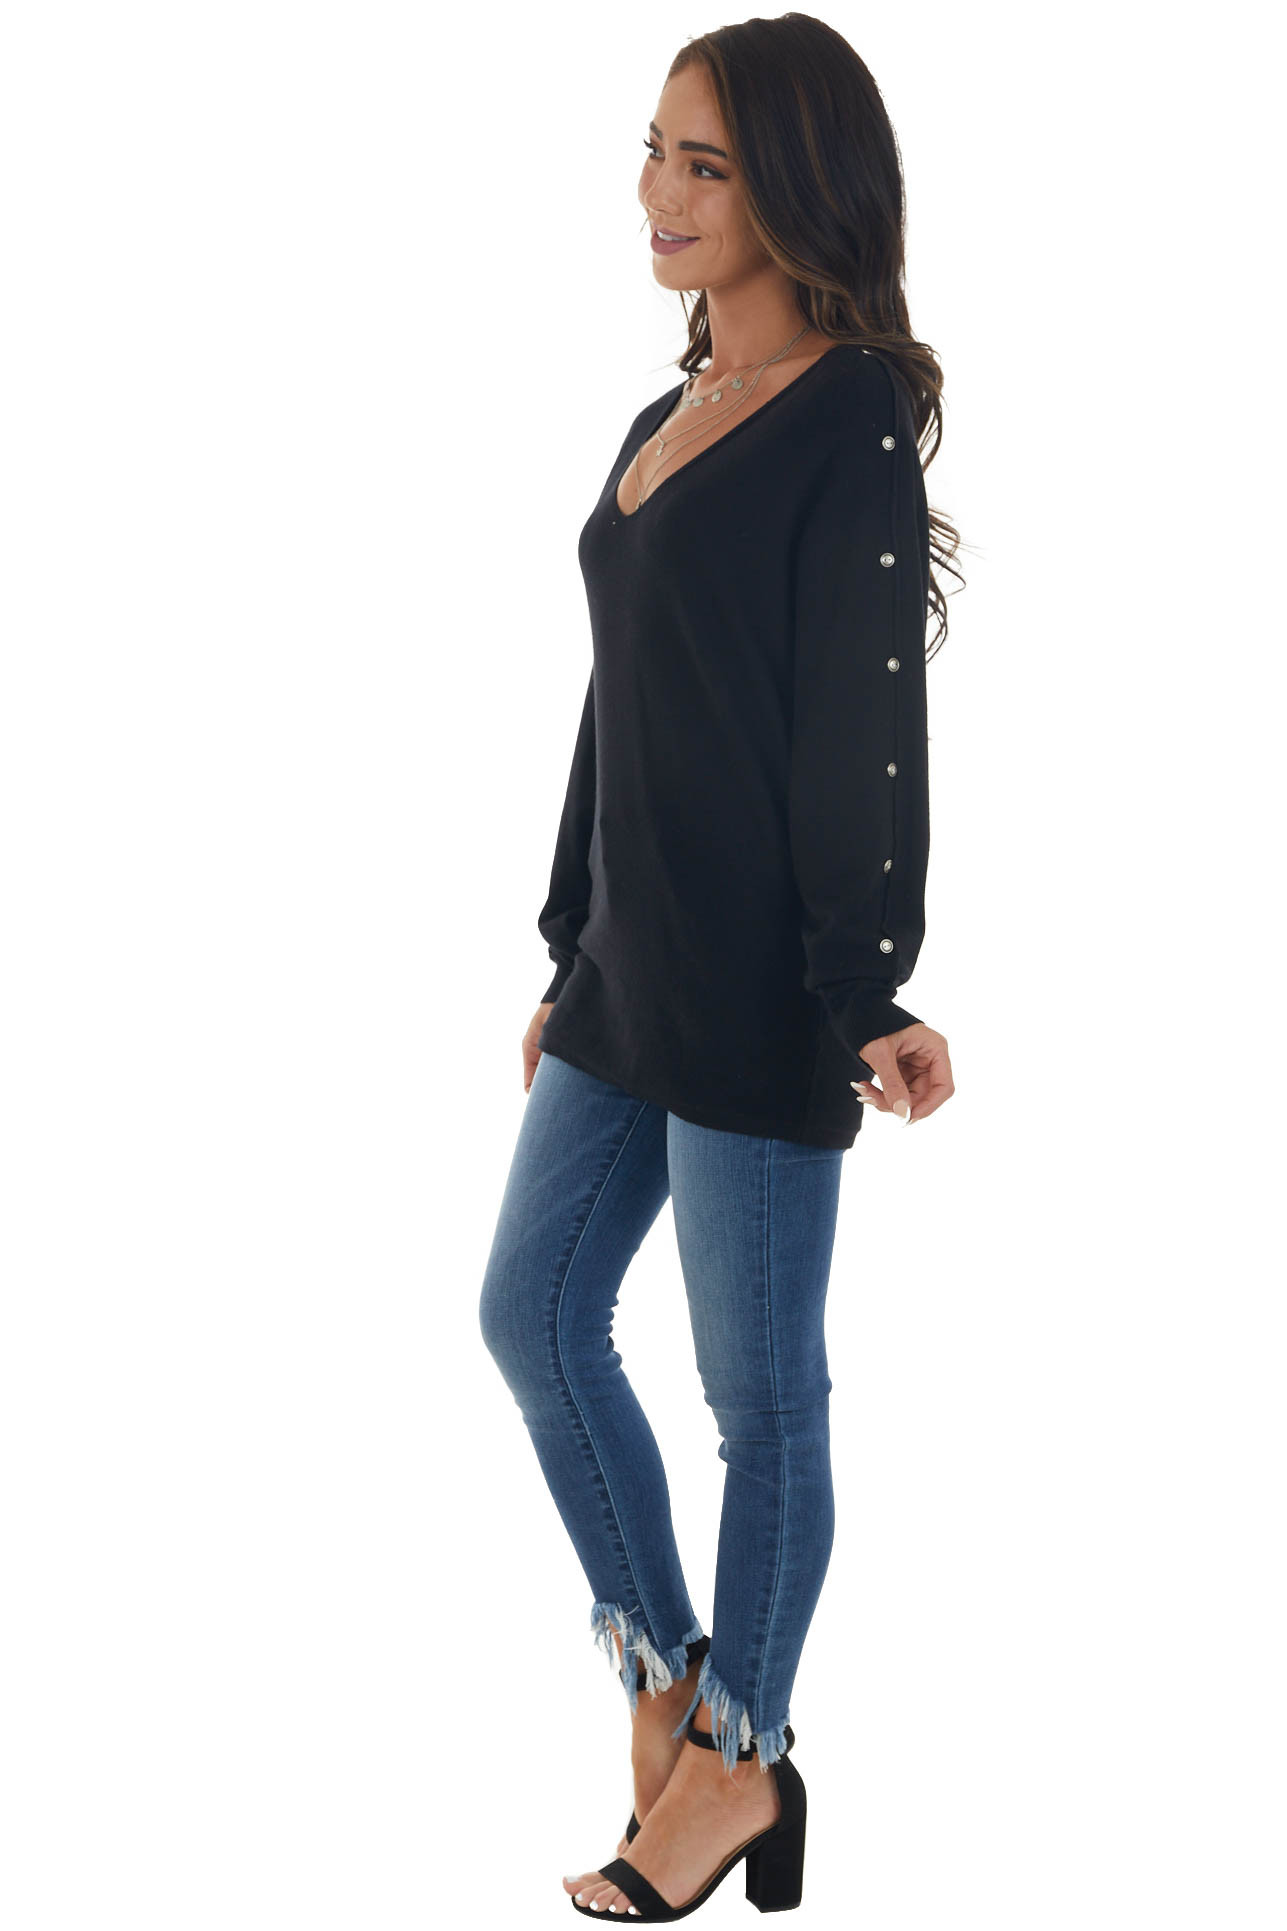 Black Soft Knit Sweater Top with Buttons